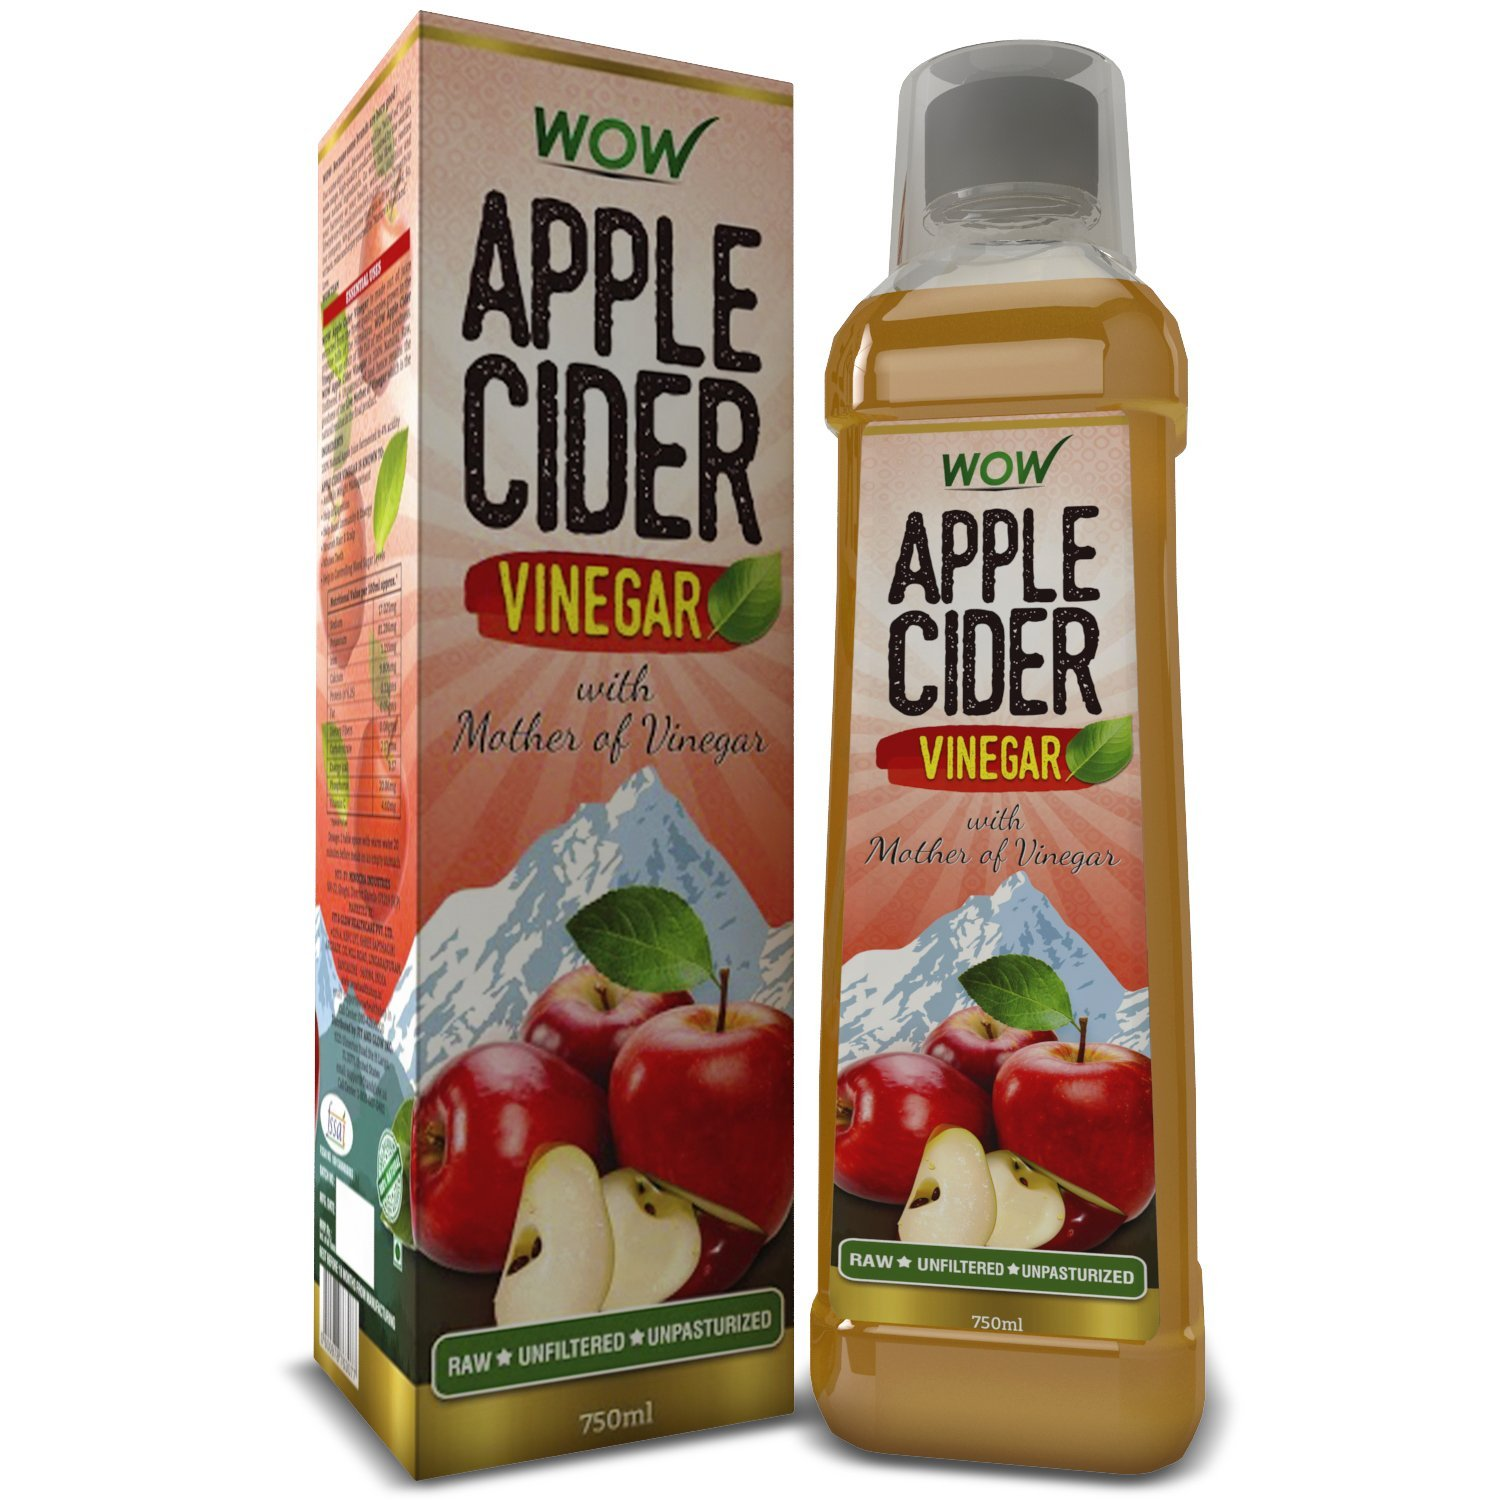 Amazon - Buy Wow Apple Cider Vinegar - 750 ml (Pack of 1) at Rs 225 Only + Free Delivery